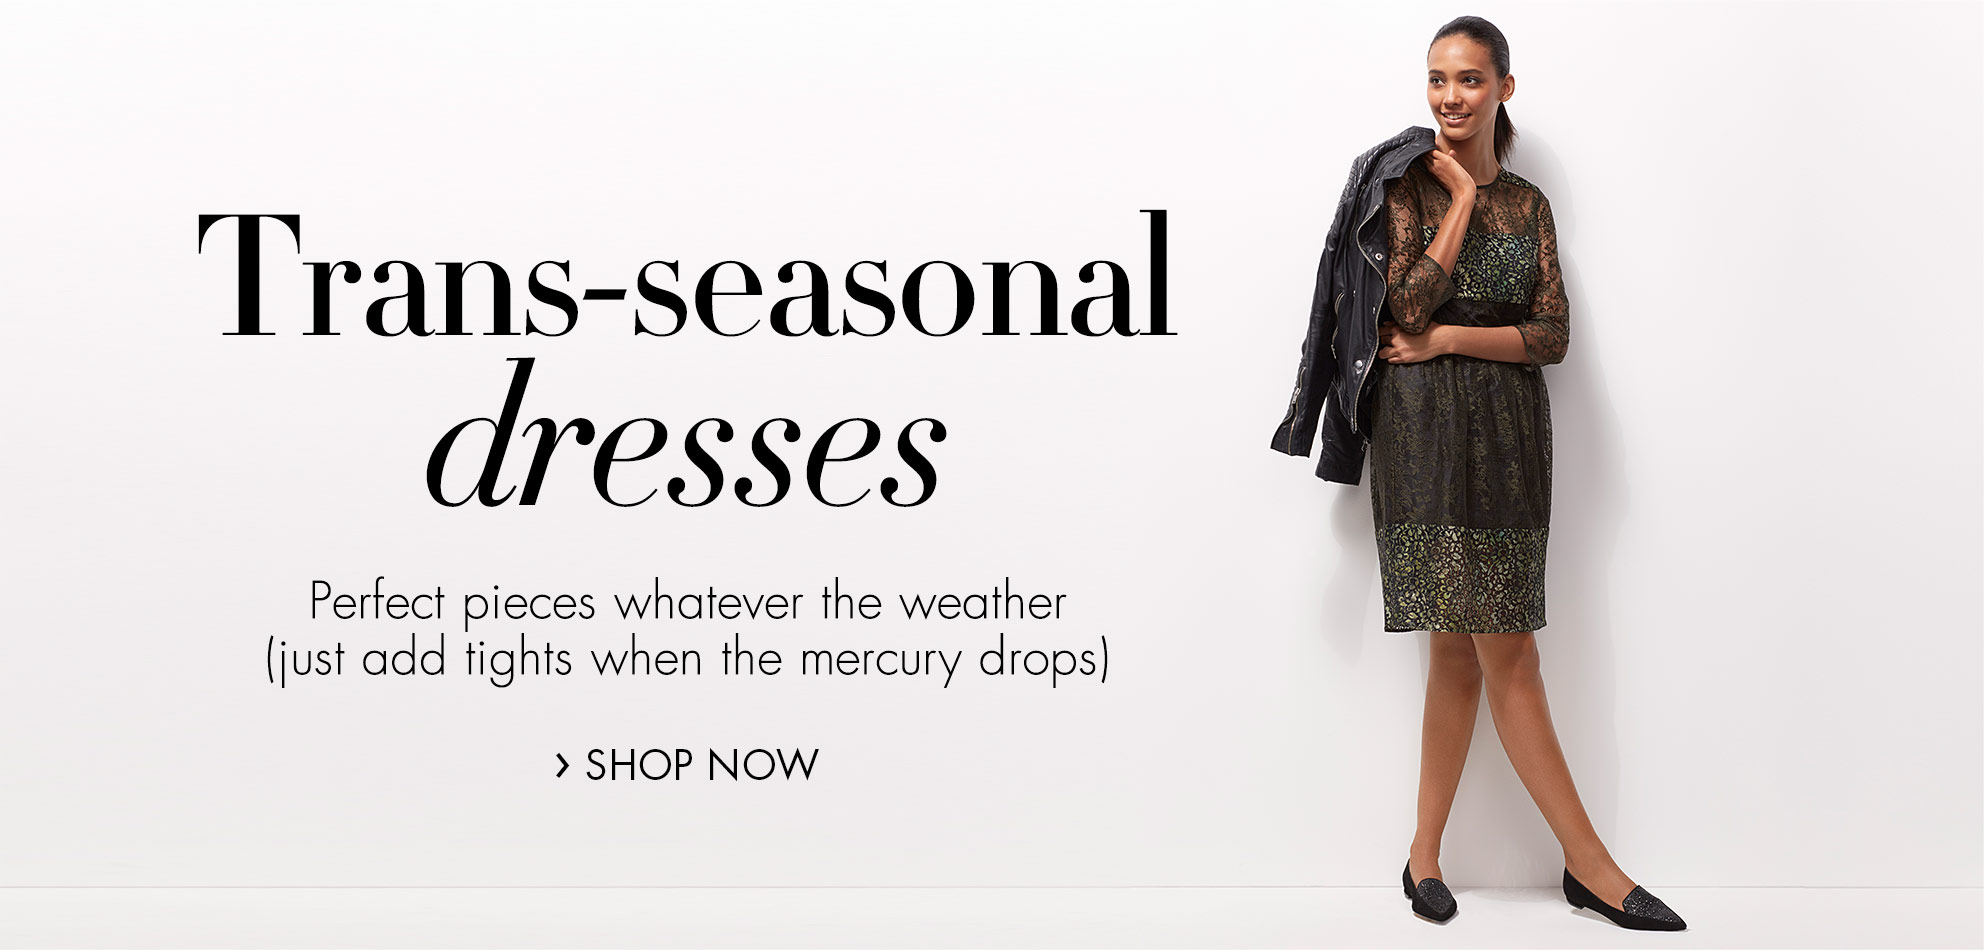 Trans-seasonal dresses